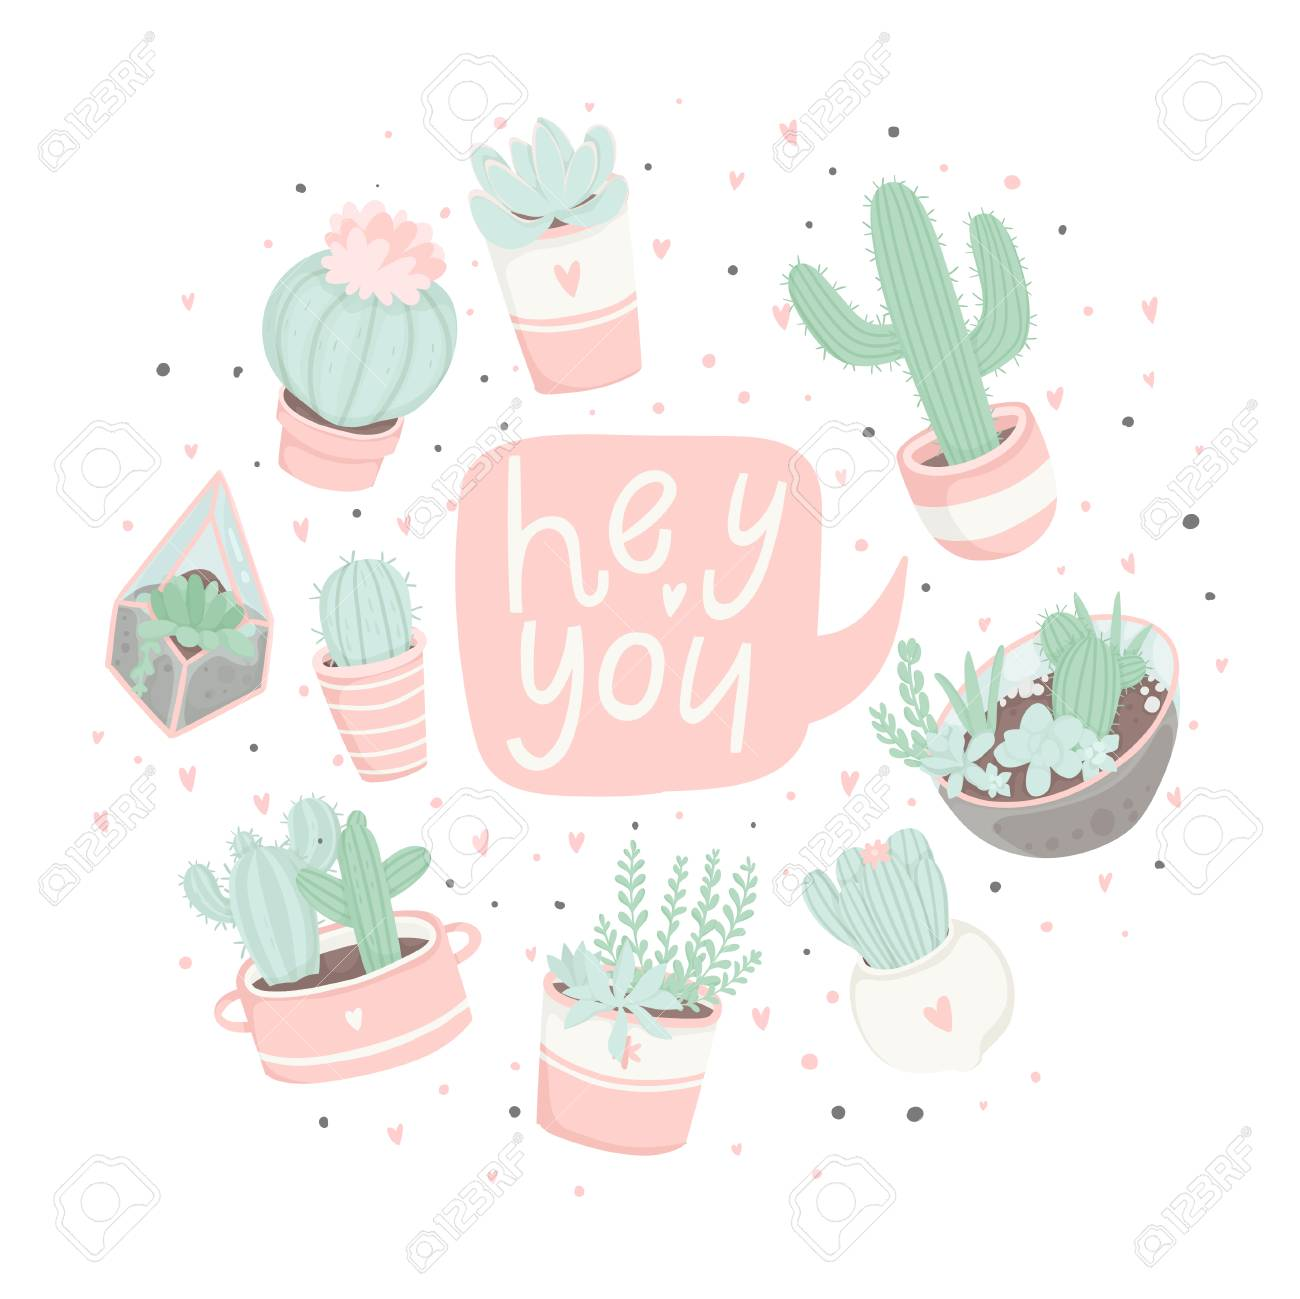 photograph regarding Cactus Printable known as Adorable cartoon well prepared-towards-retain the services of present postcards with succulents and..